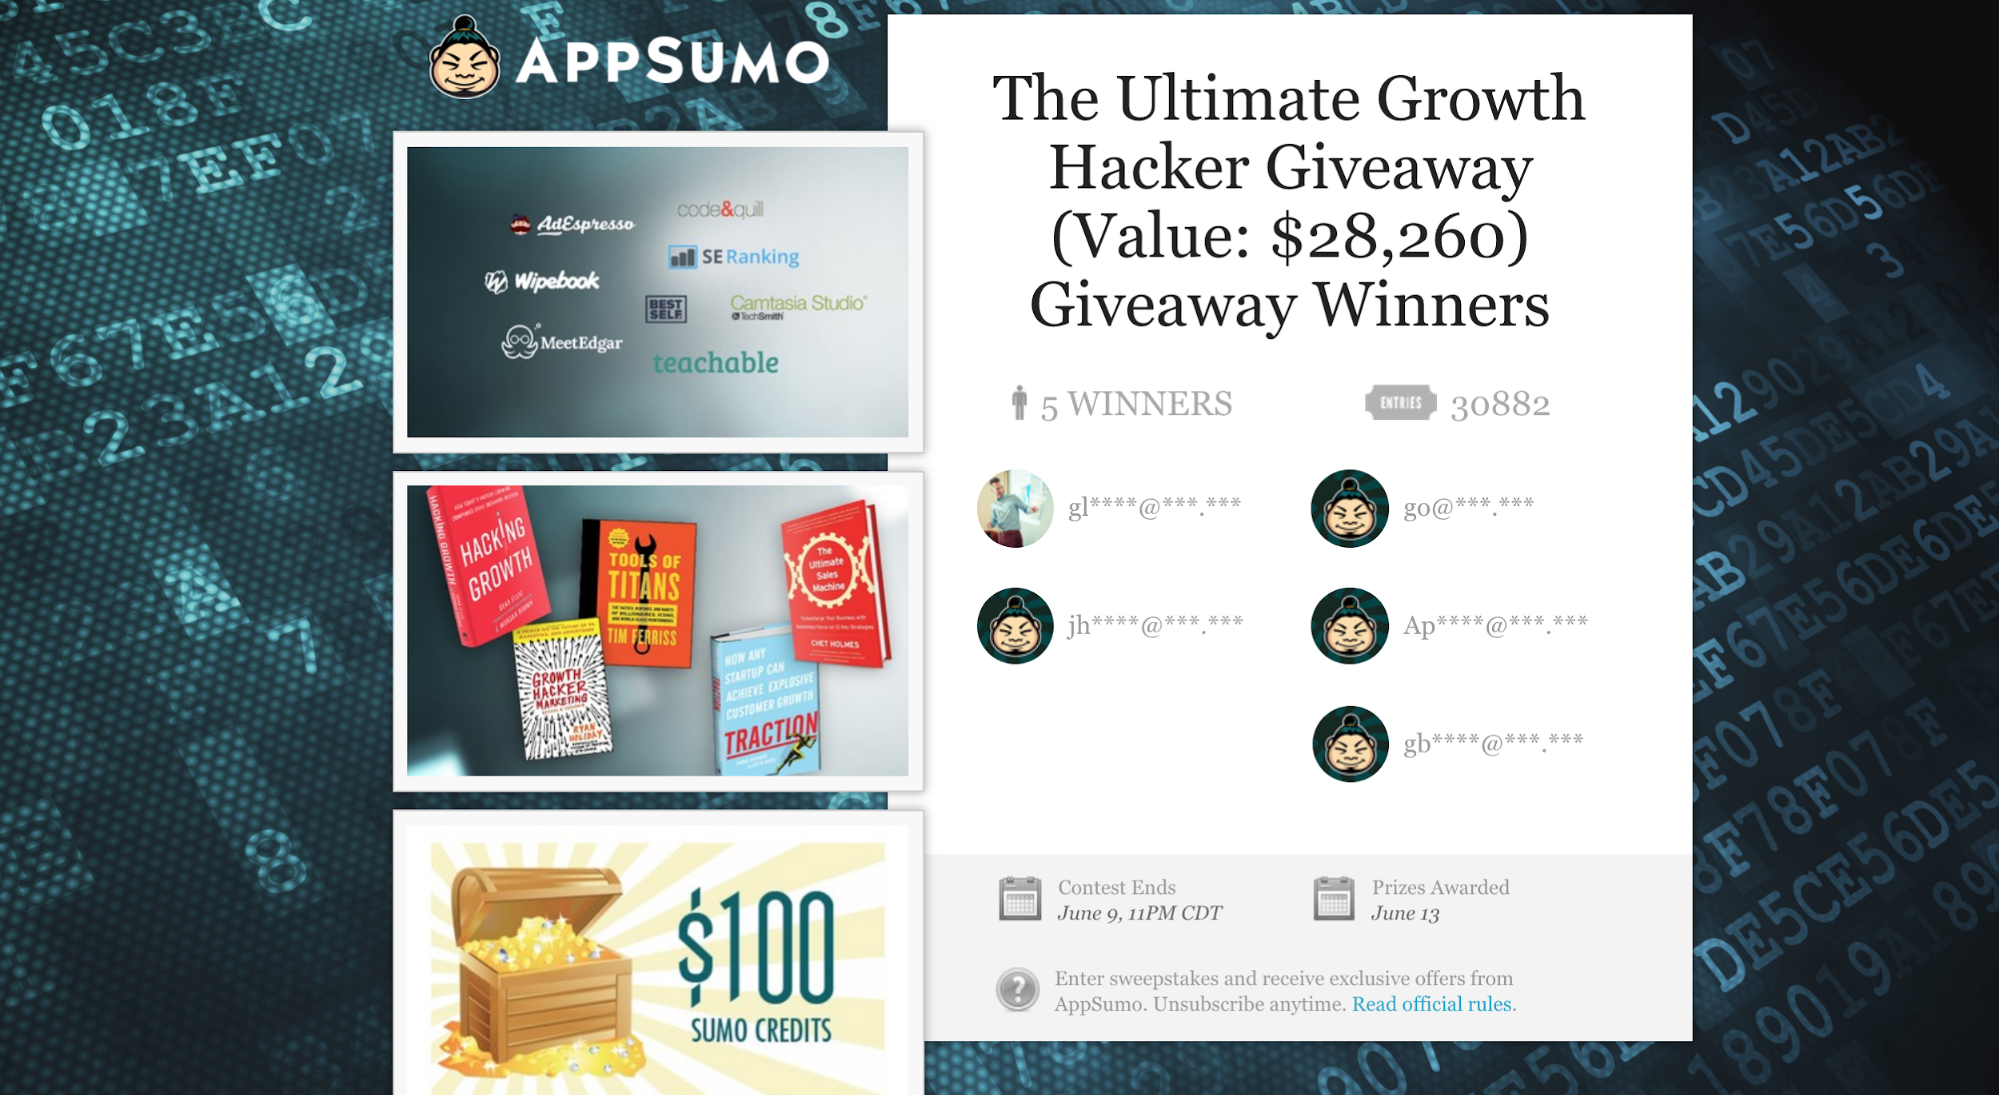 Screenshot showing an appsumo giveaway